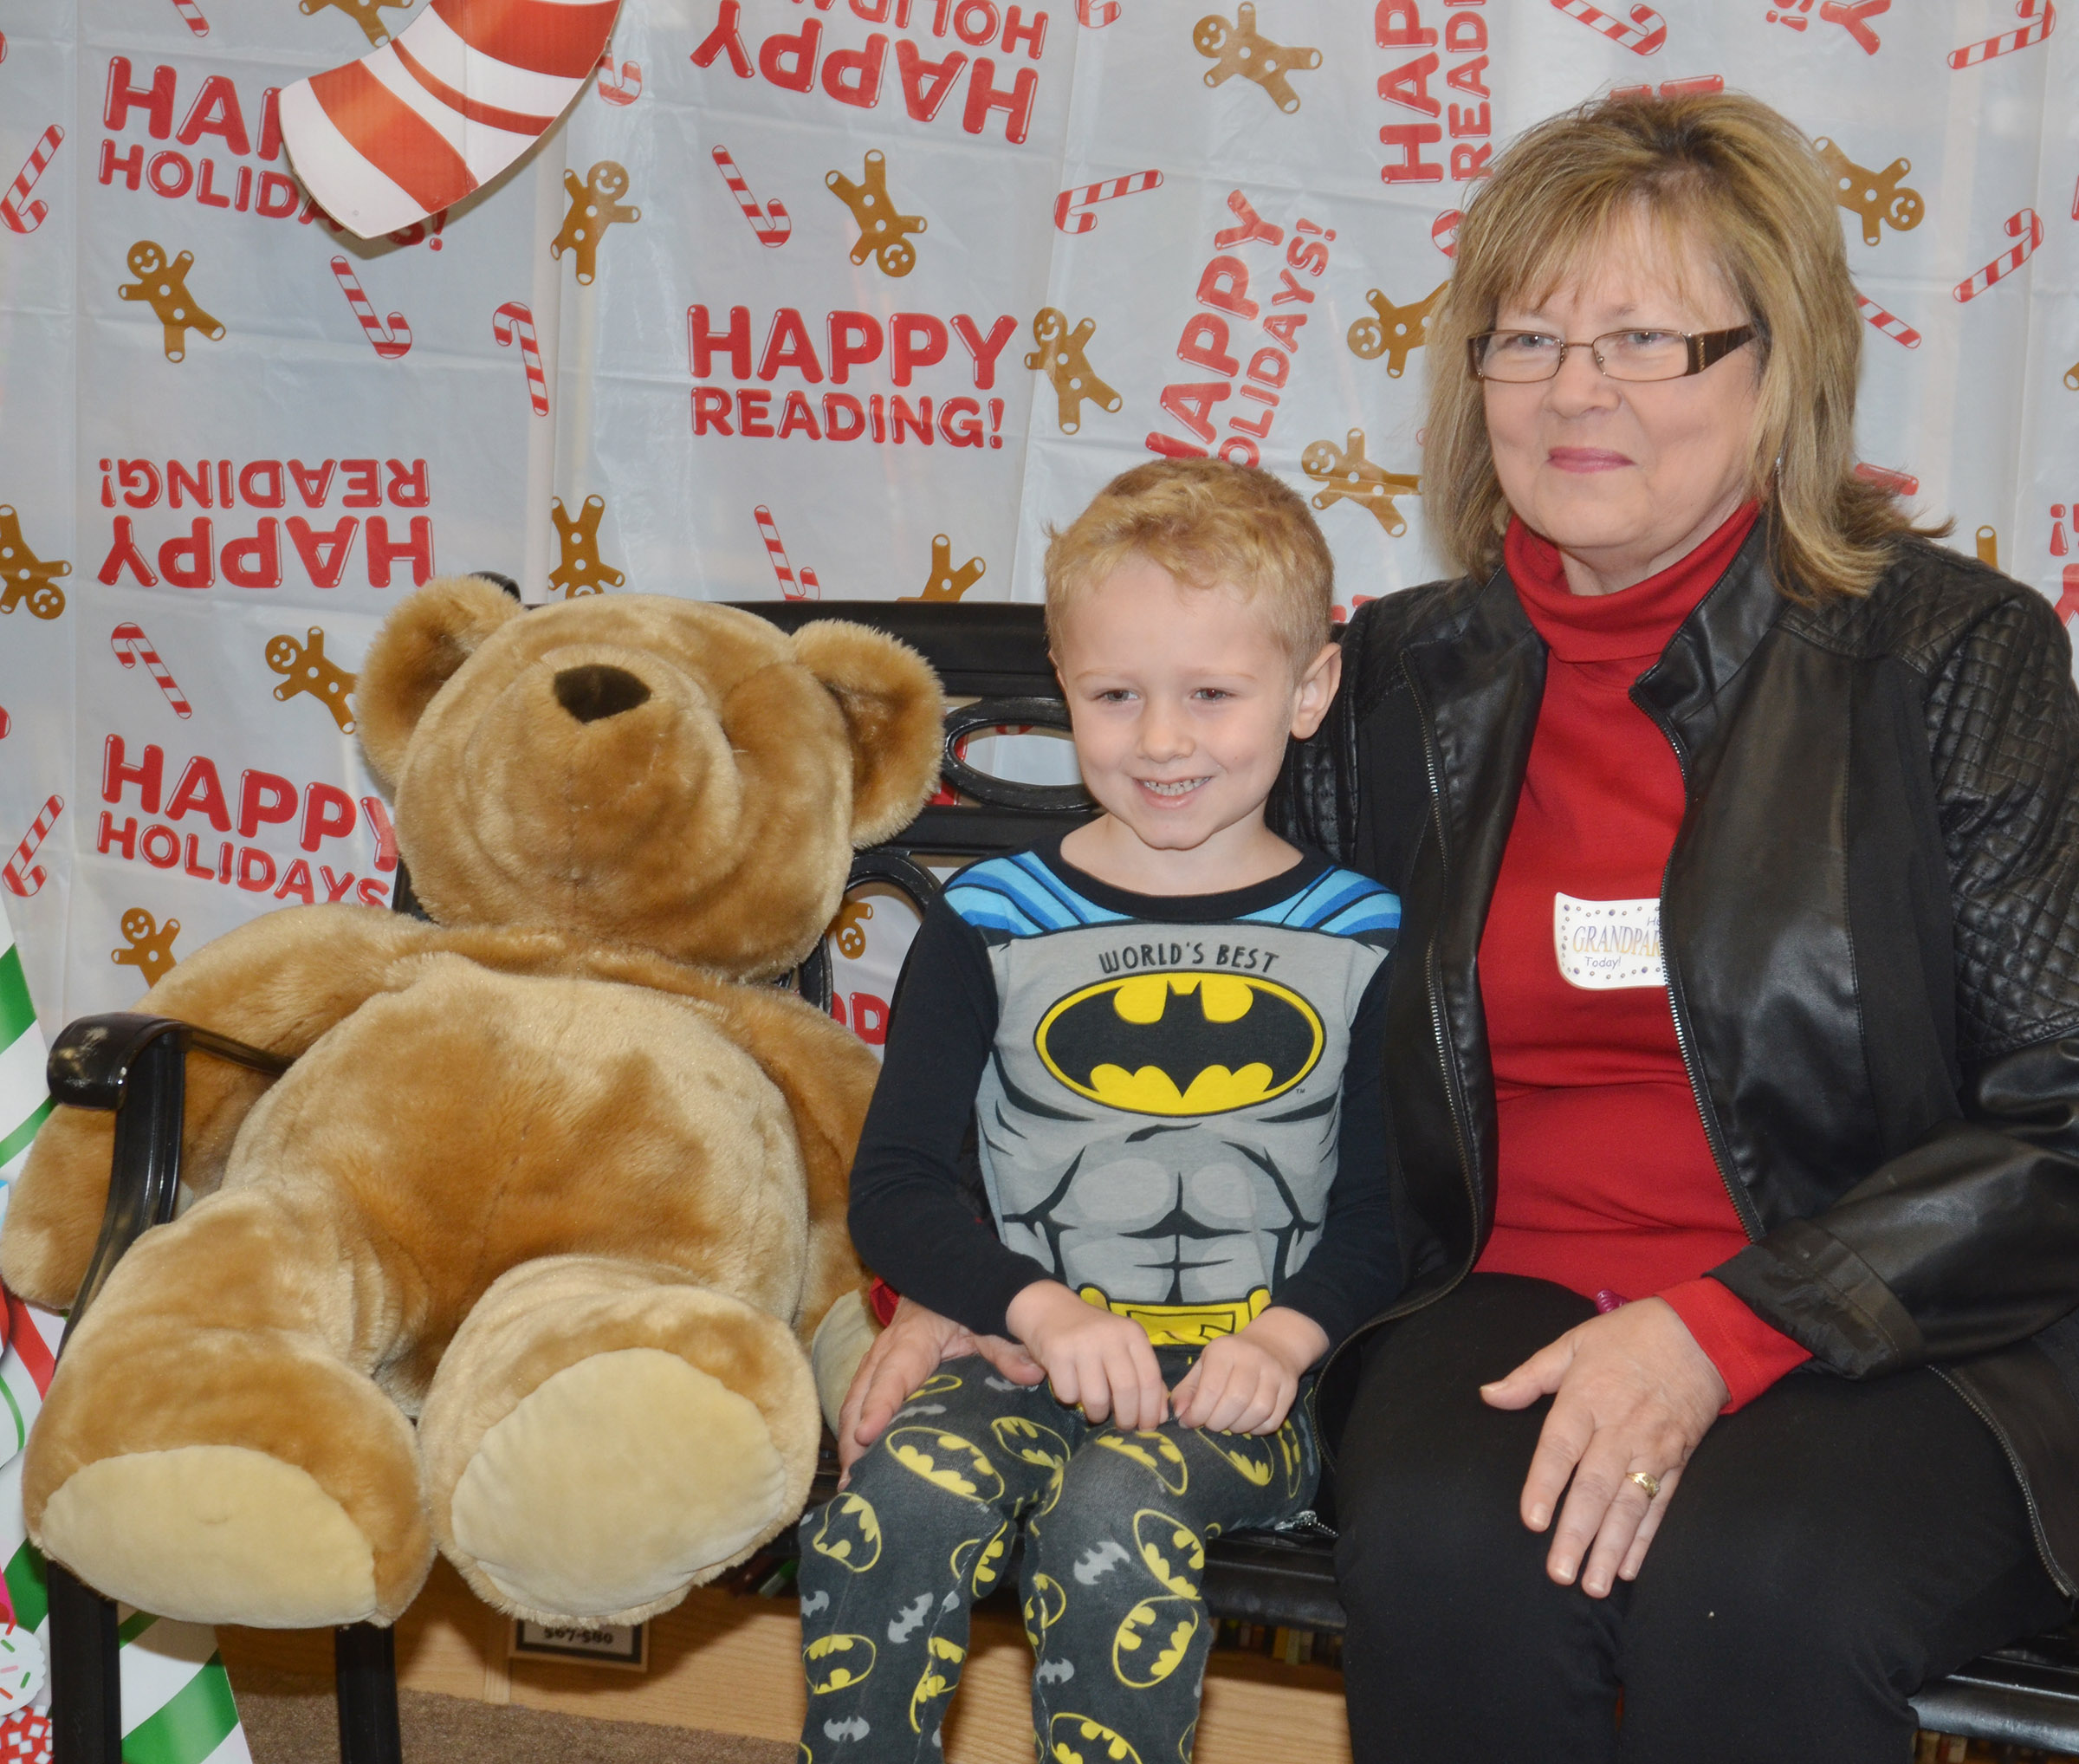 CES kindergartener Jackson Wright poses for a photo with his grandmother, Arlene Wright.